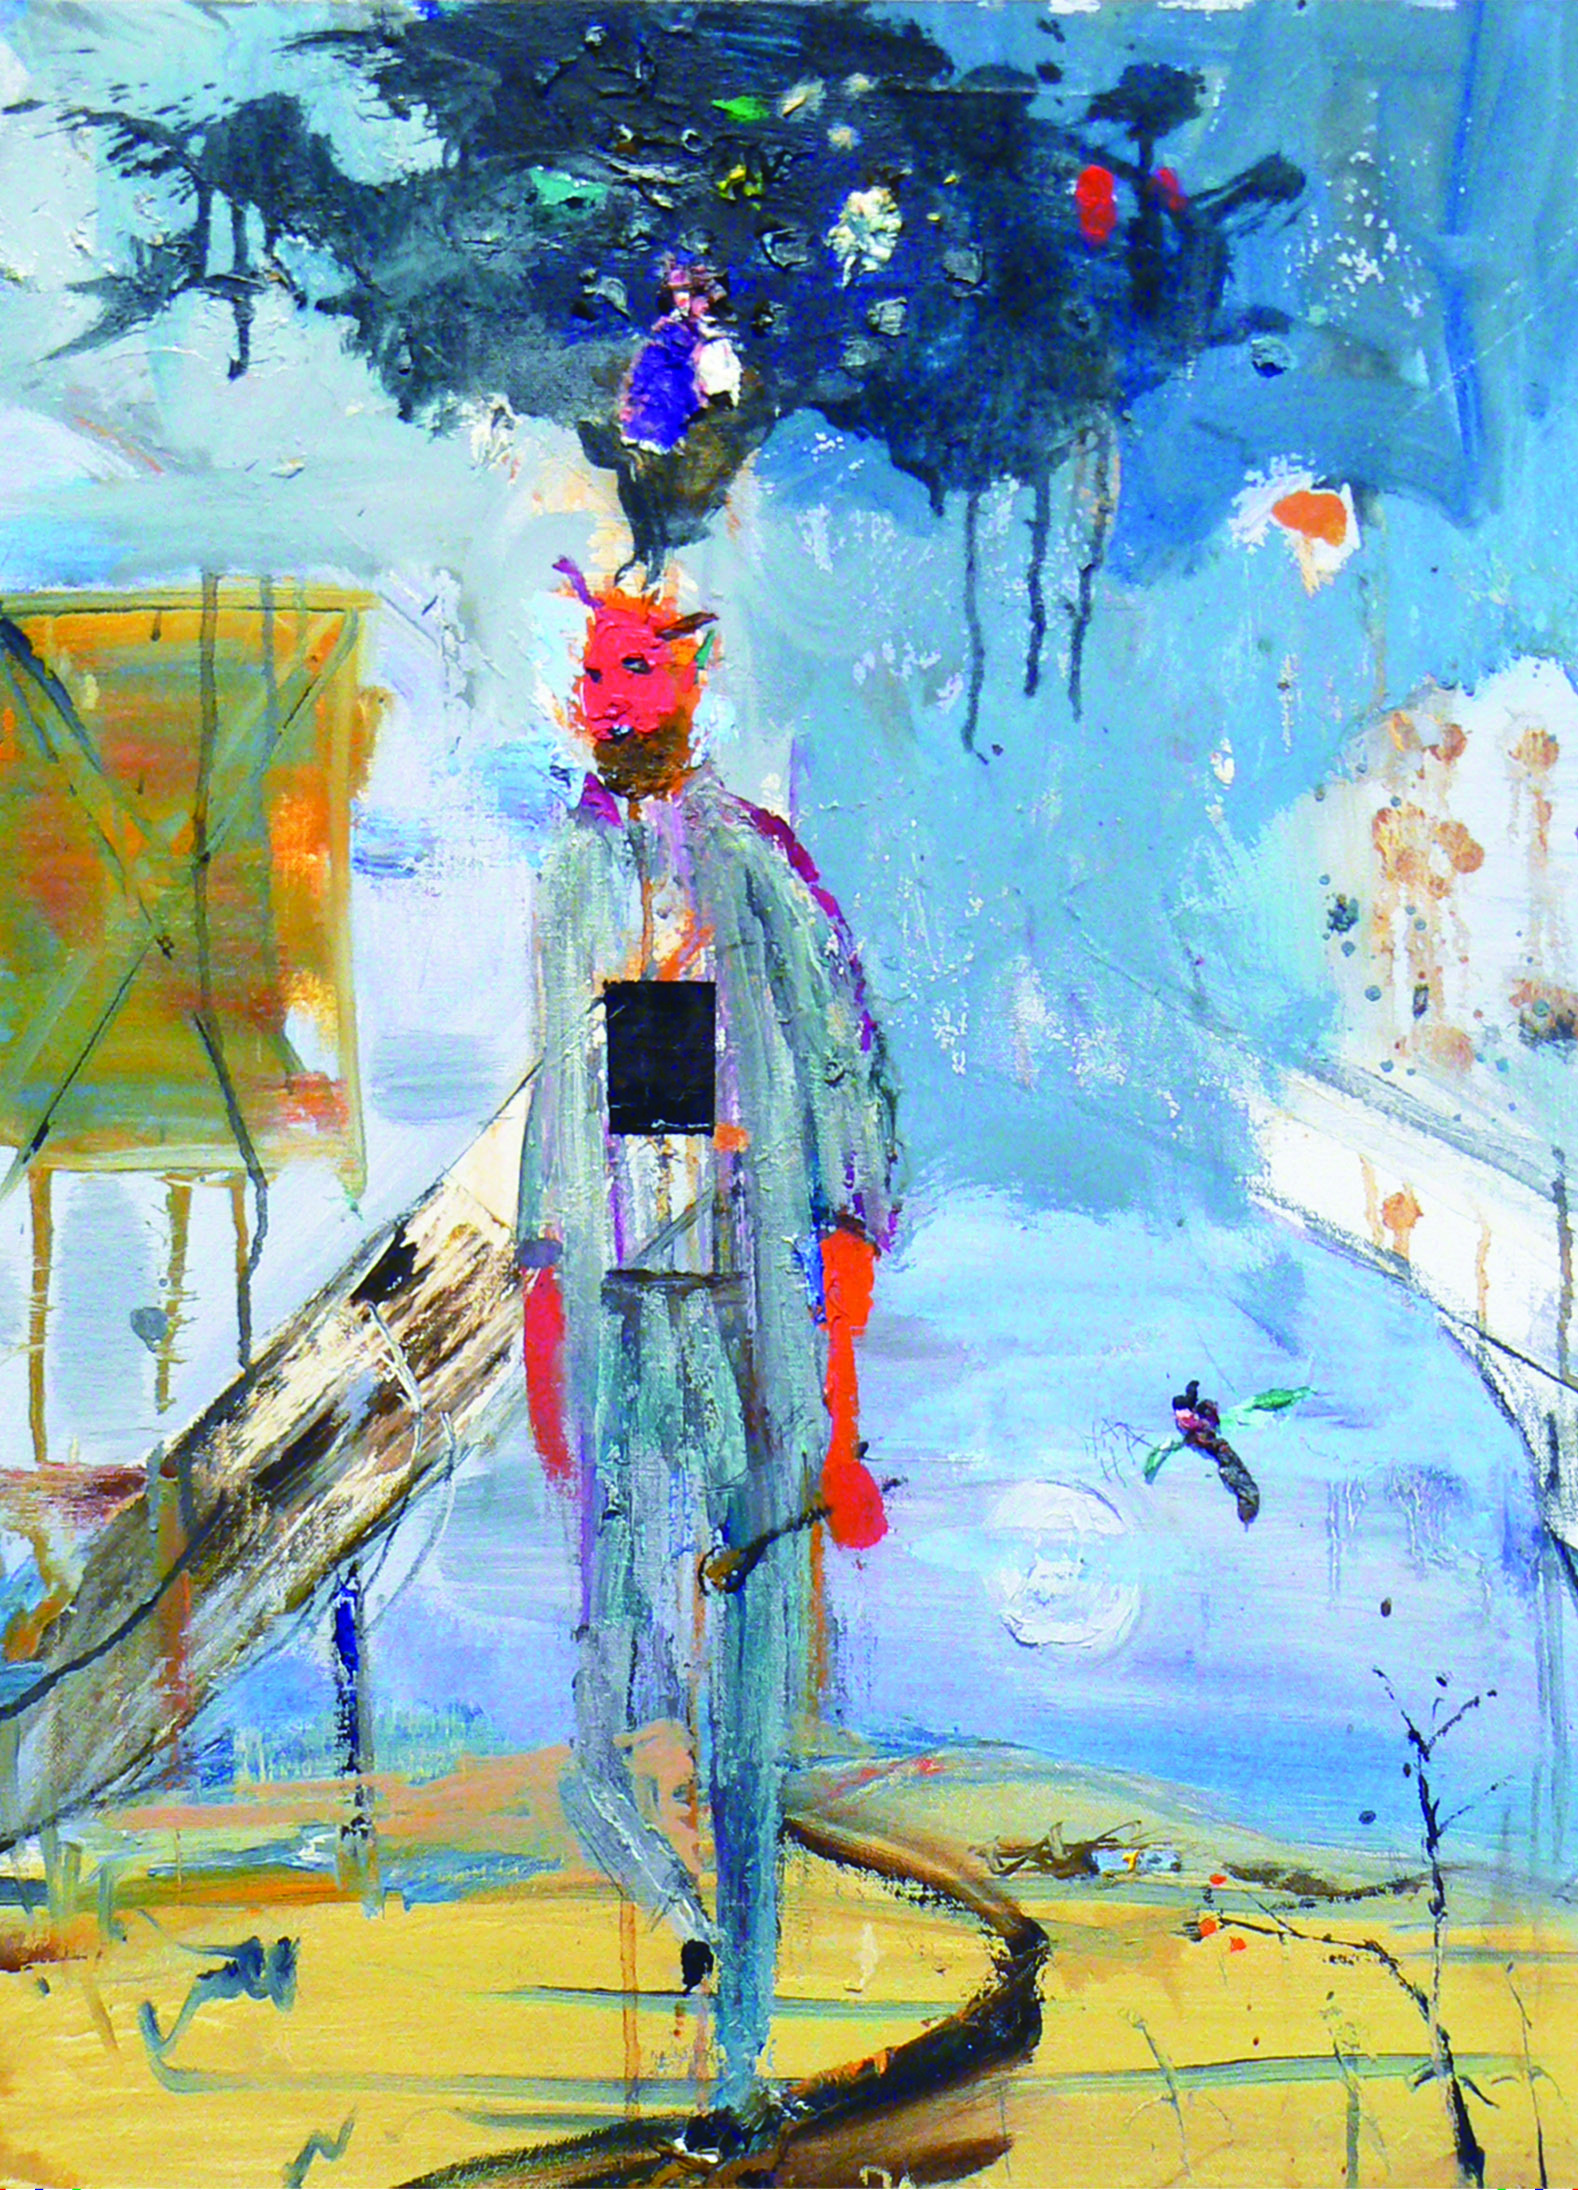 Matt Blackwell,  Lonesome Devil,  2012, Oil on canvas with collage, 25h x 21w in.